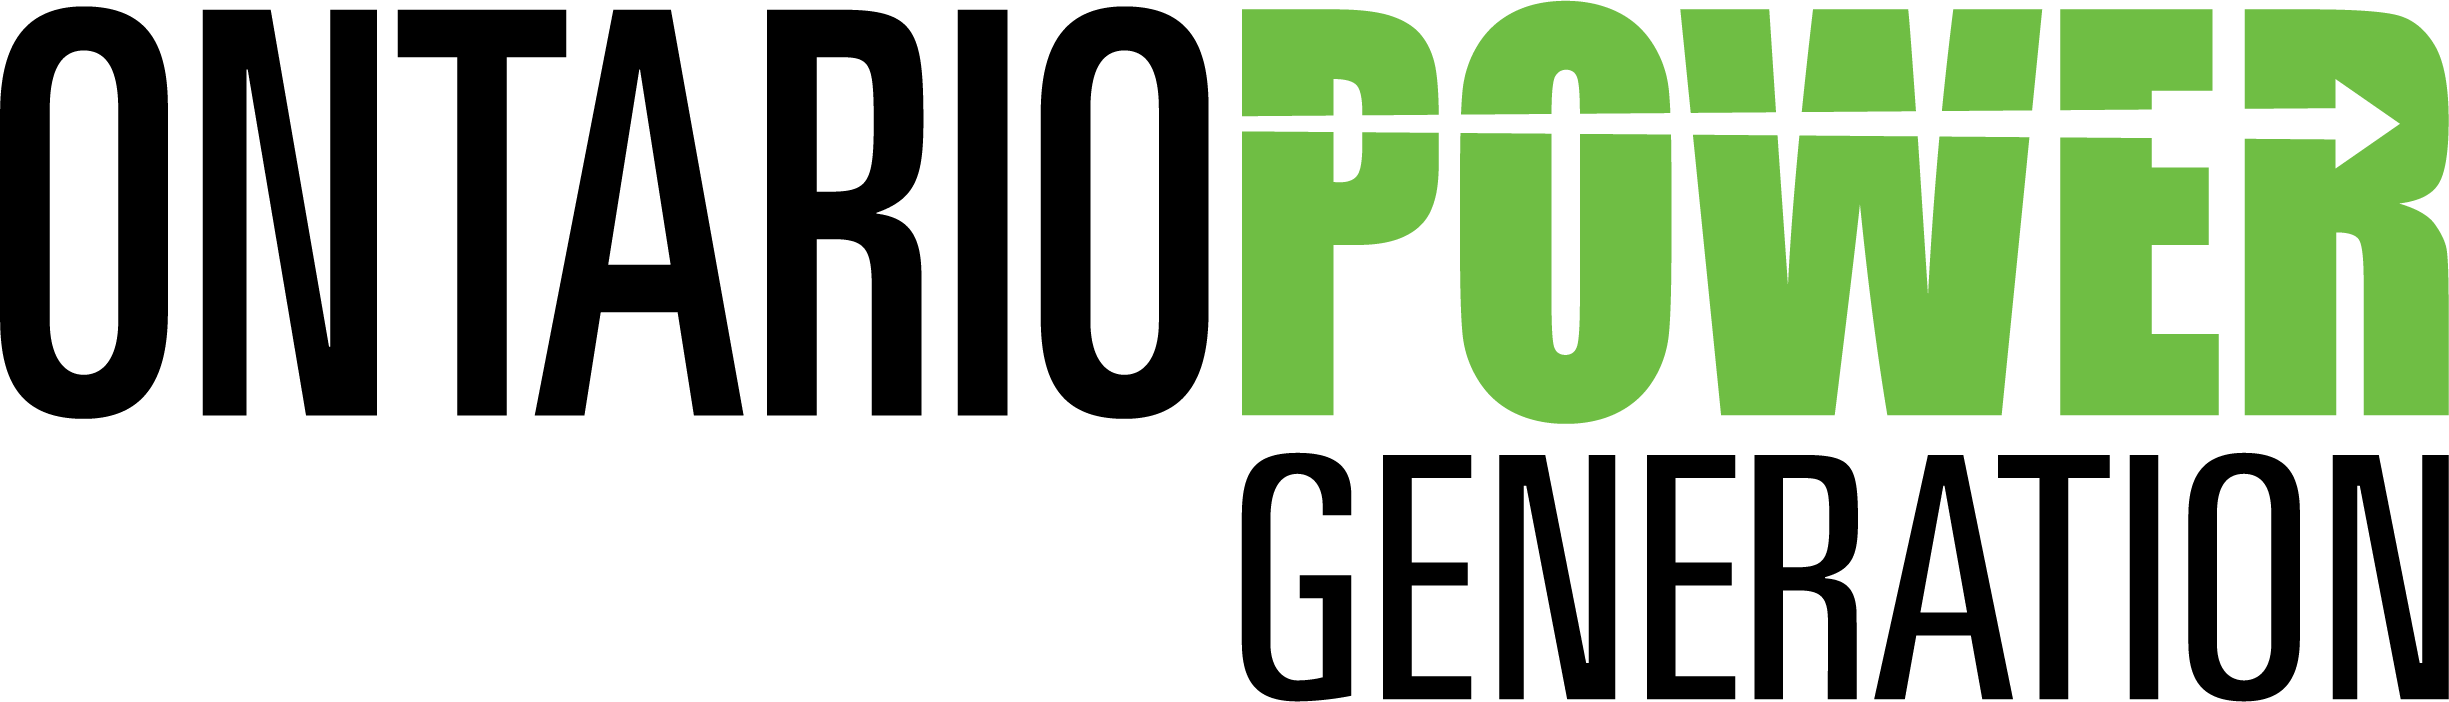 OPG logo new green